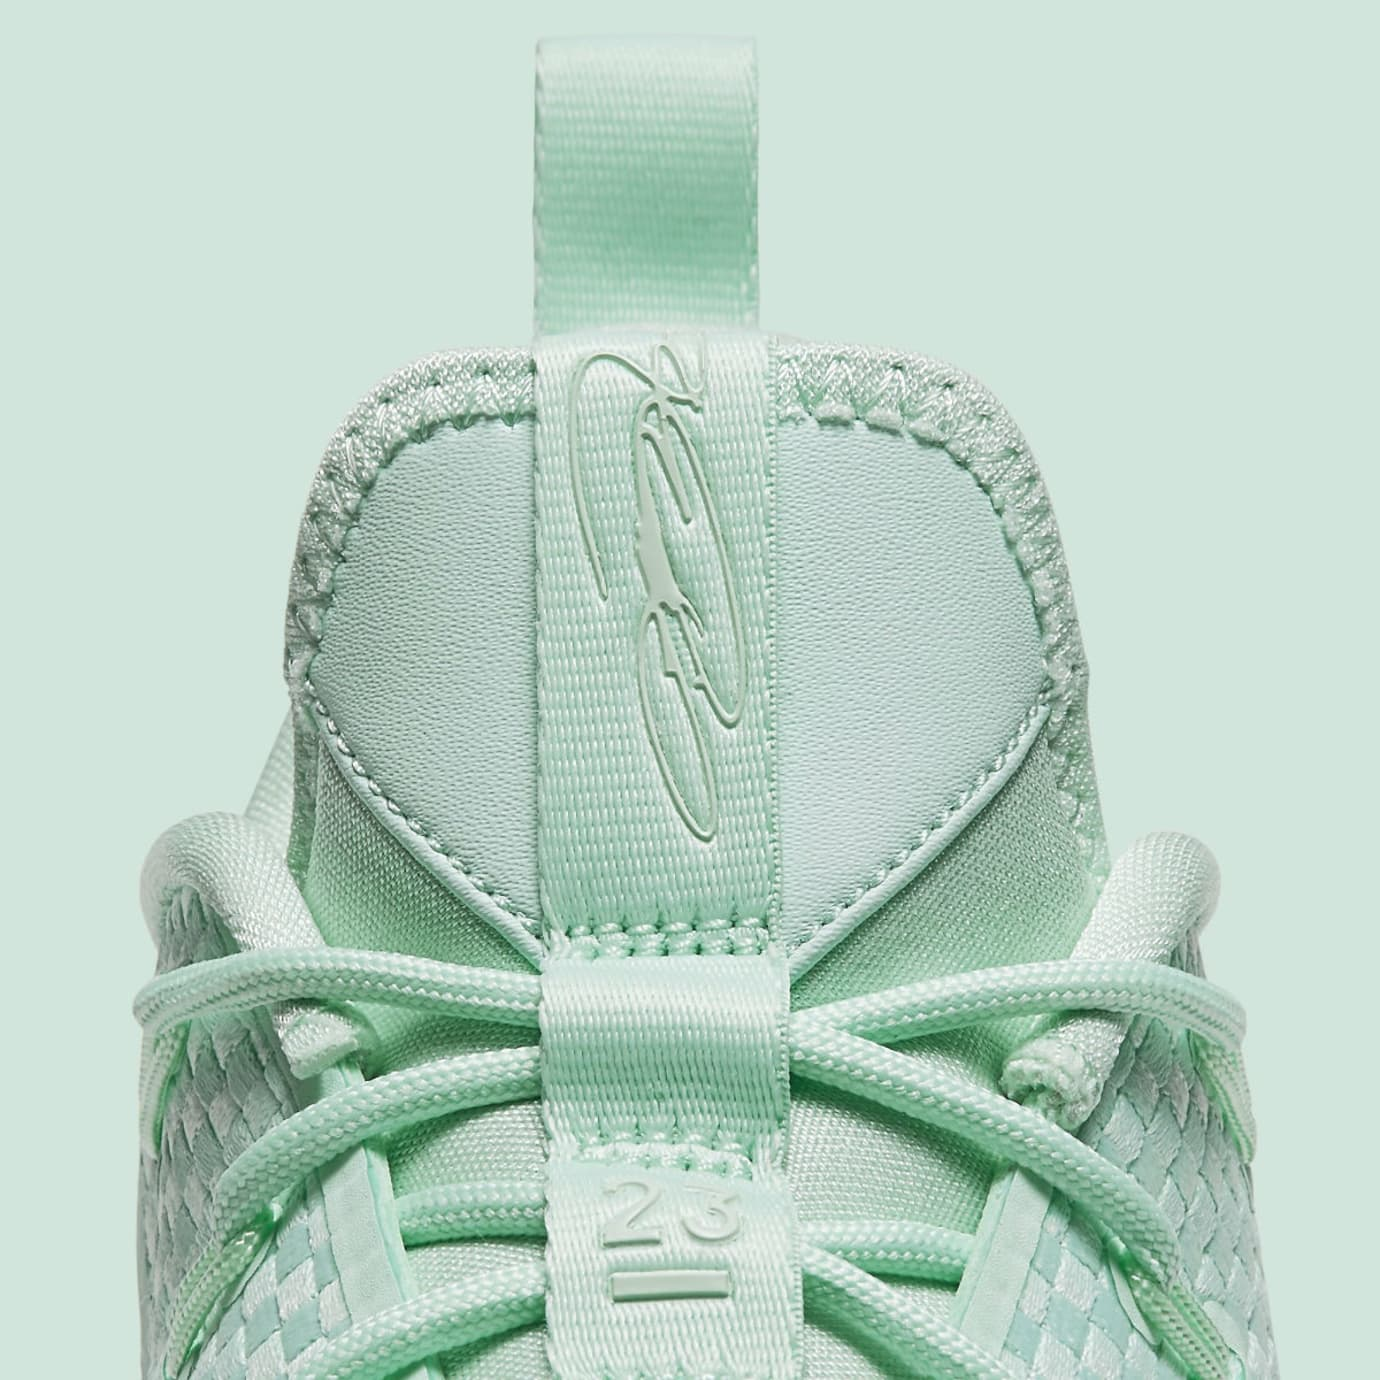 Nike LeBron 14 Low Green Release Date Tongue 878635-300